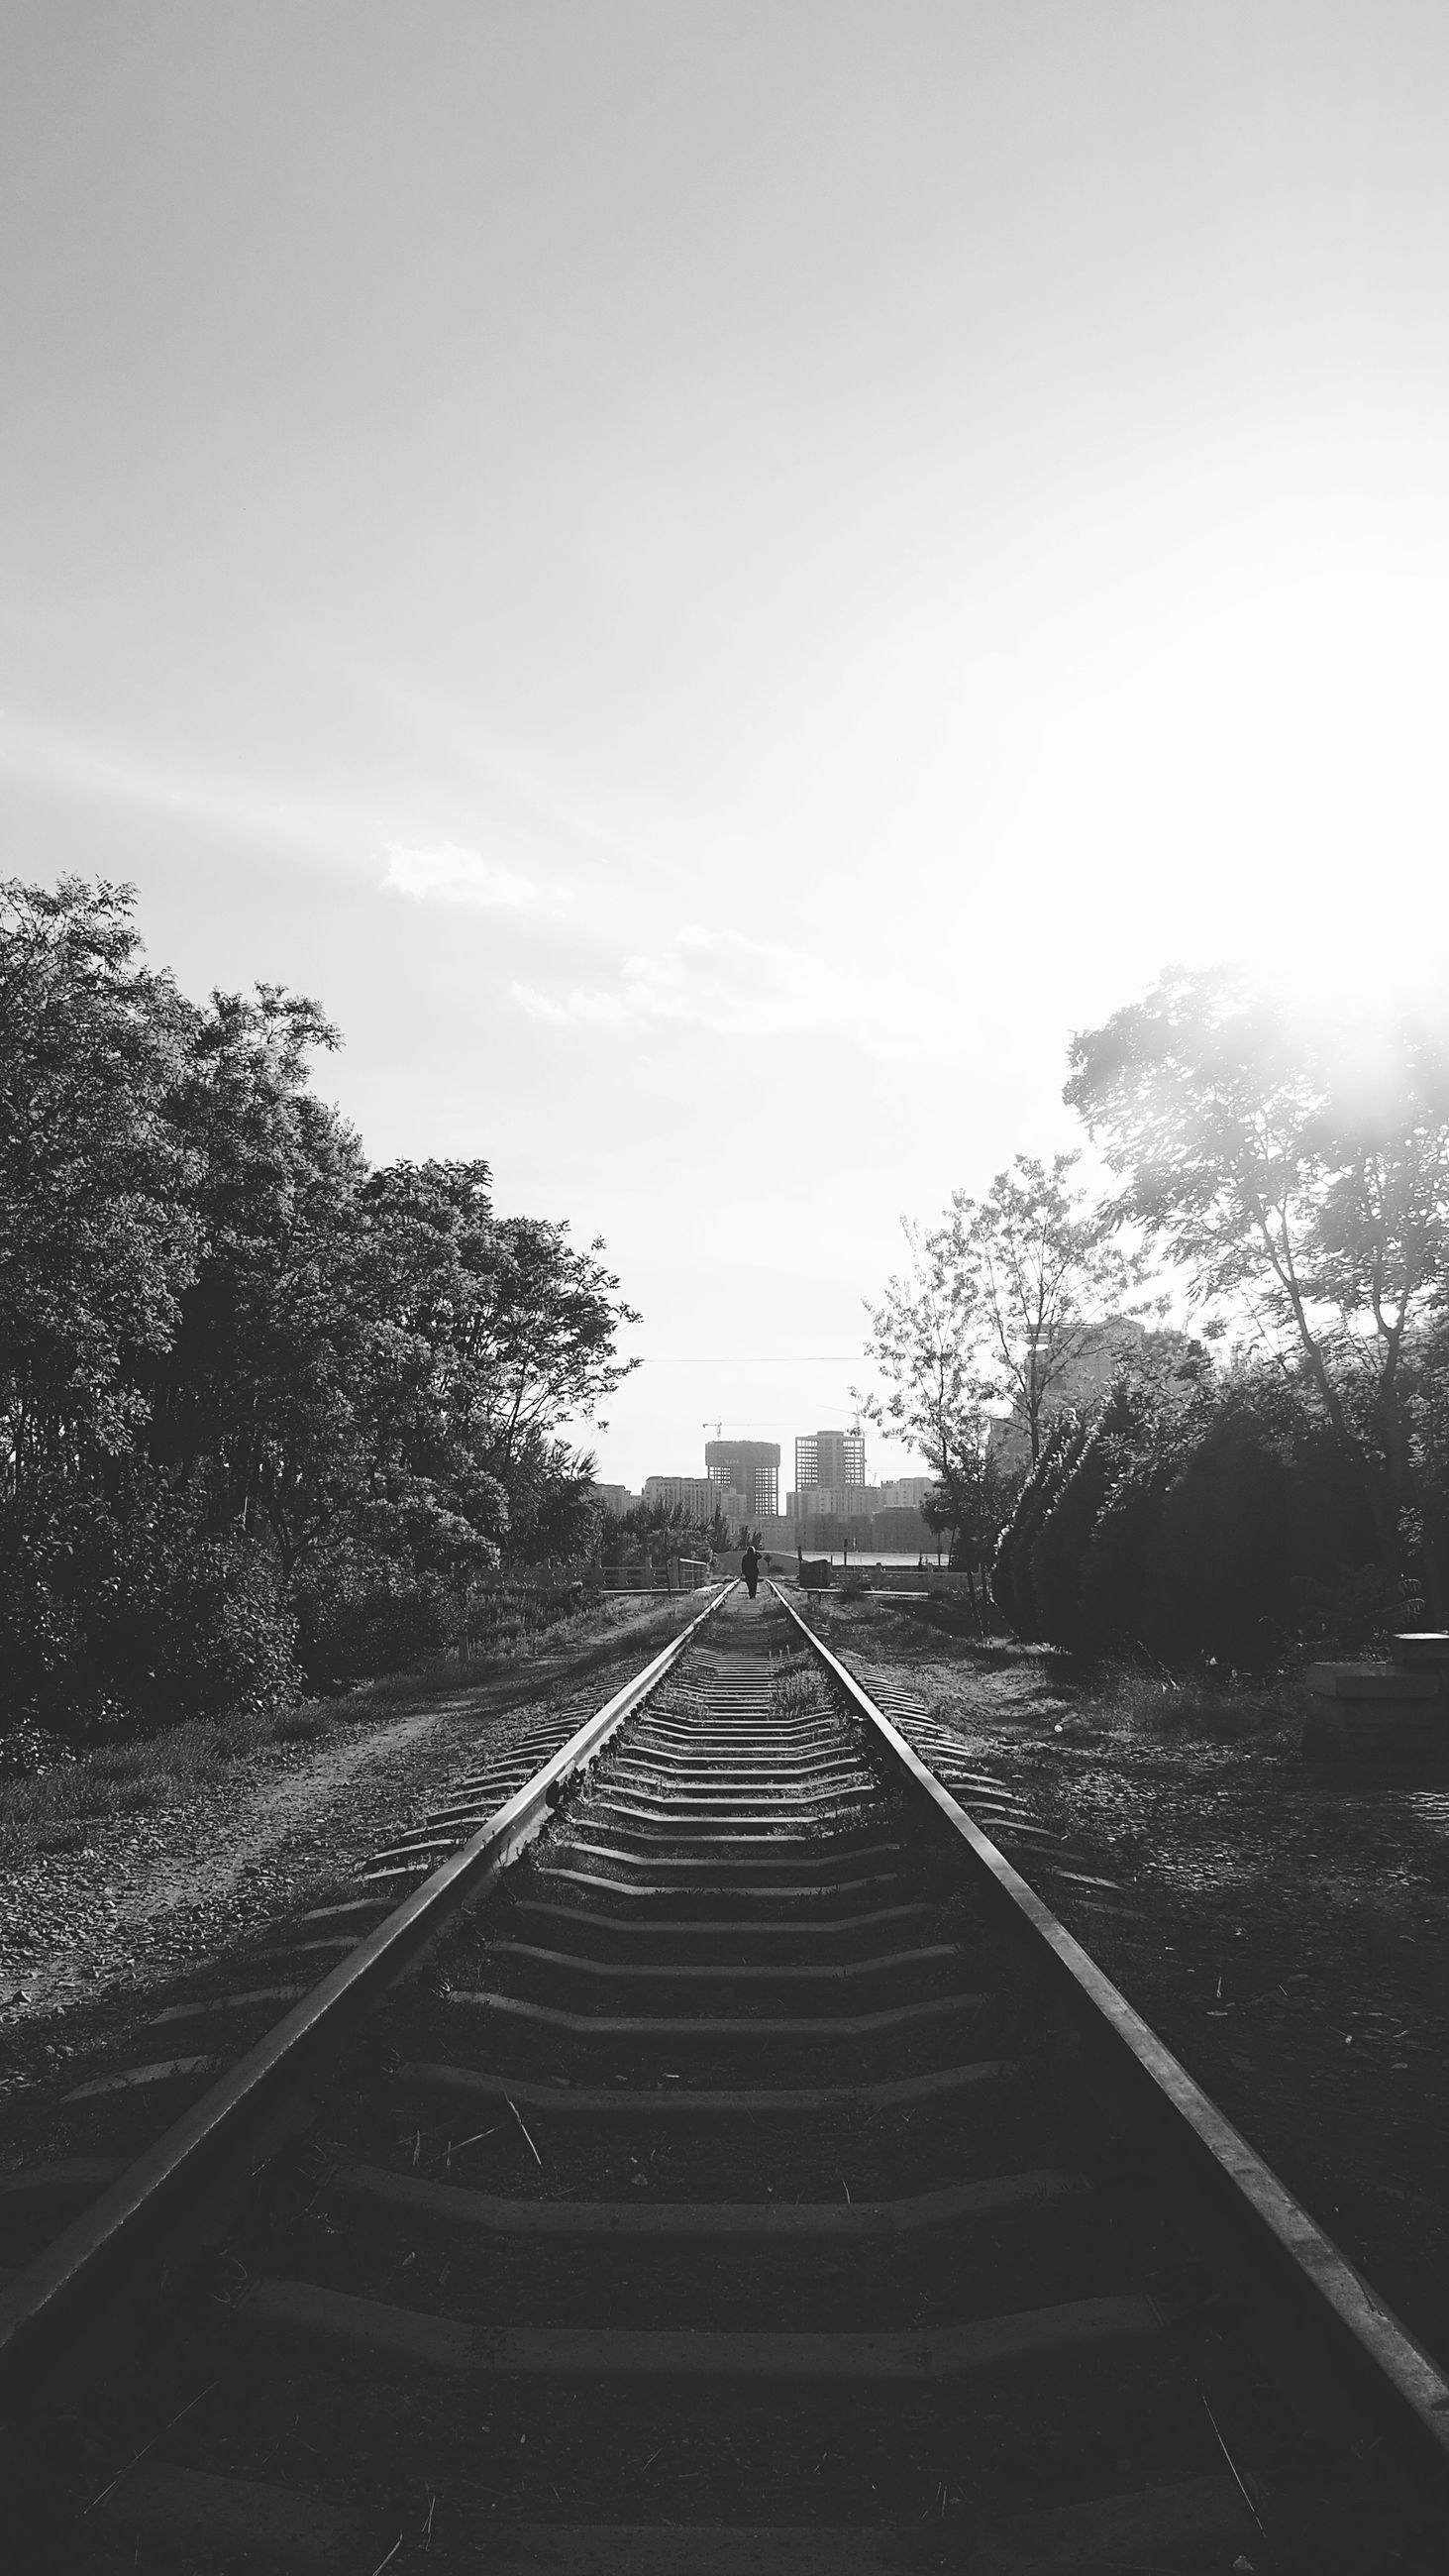 the way forward, sky, tree, railroad track, diminishing perspective, vanishing point, transportation, railing, clear sky, built structure, sunlight, day, nature, outdoors, architecture, growth, no people, tranquility, steps, field